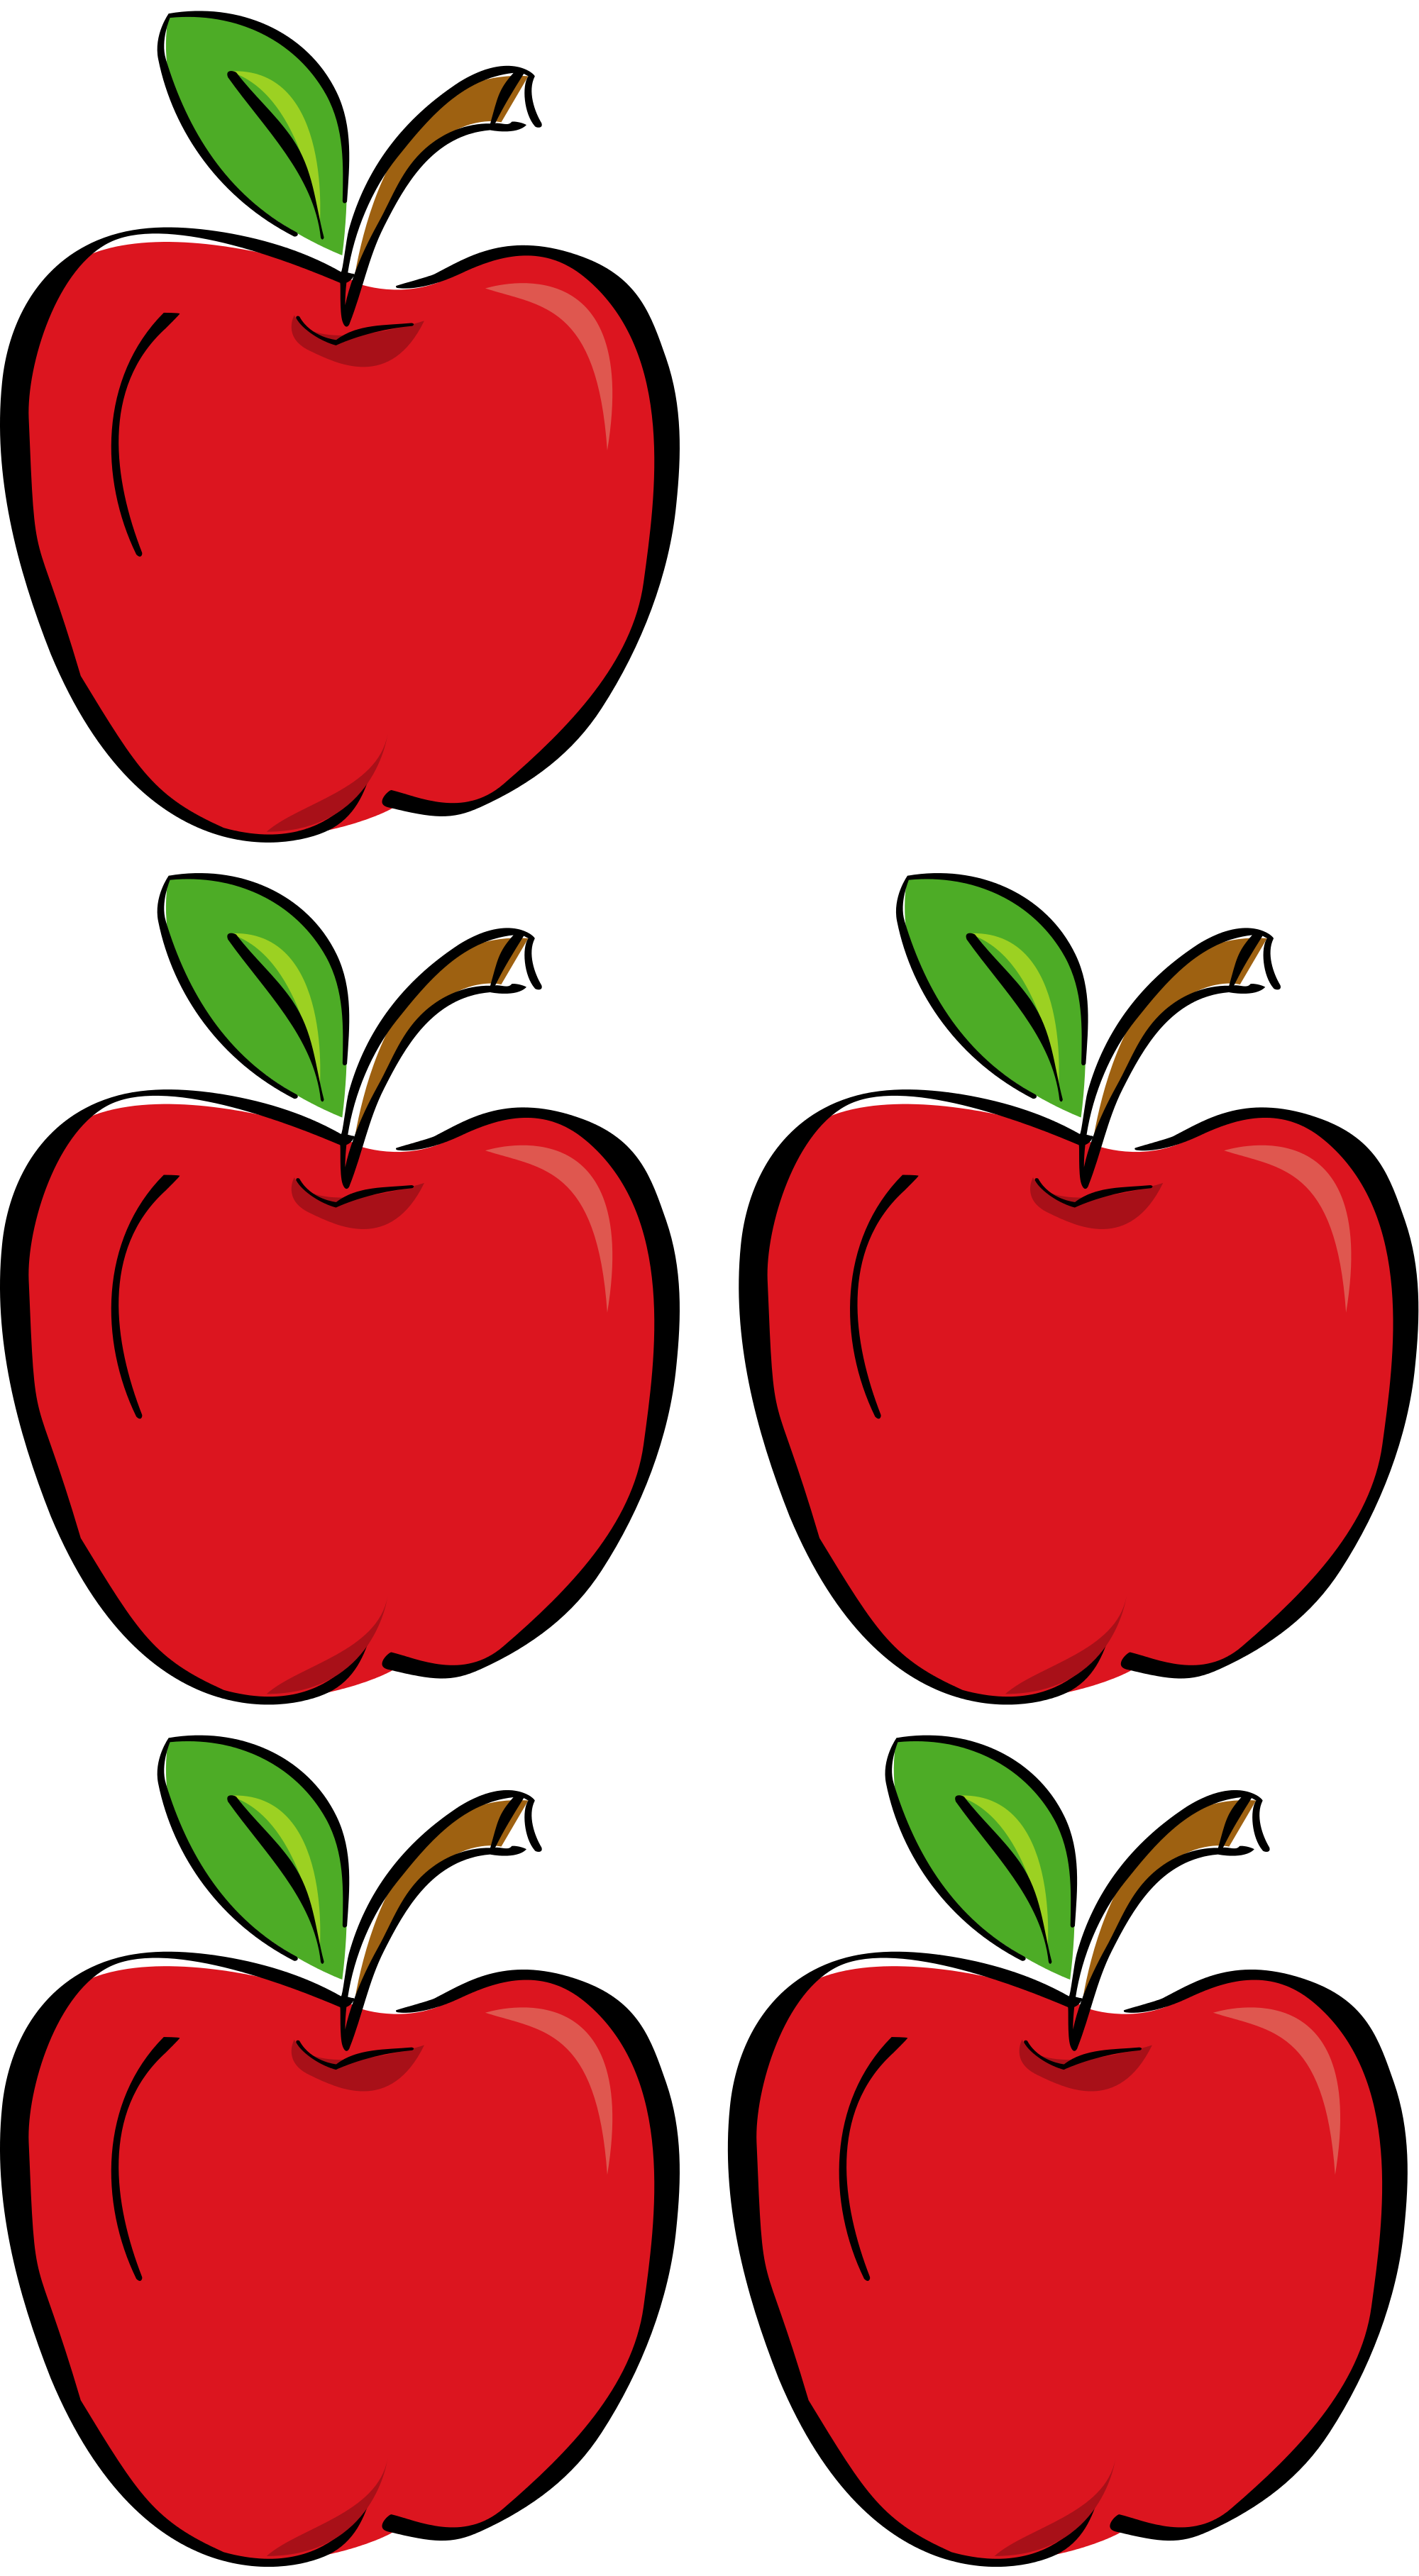 Apple clipart rendered vector File:Addition01.svg - Wikimedia Commons vector